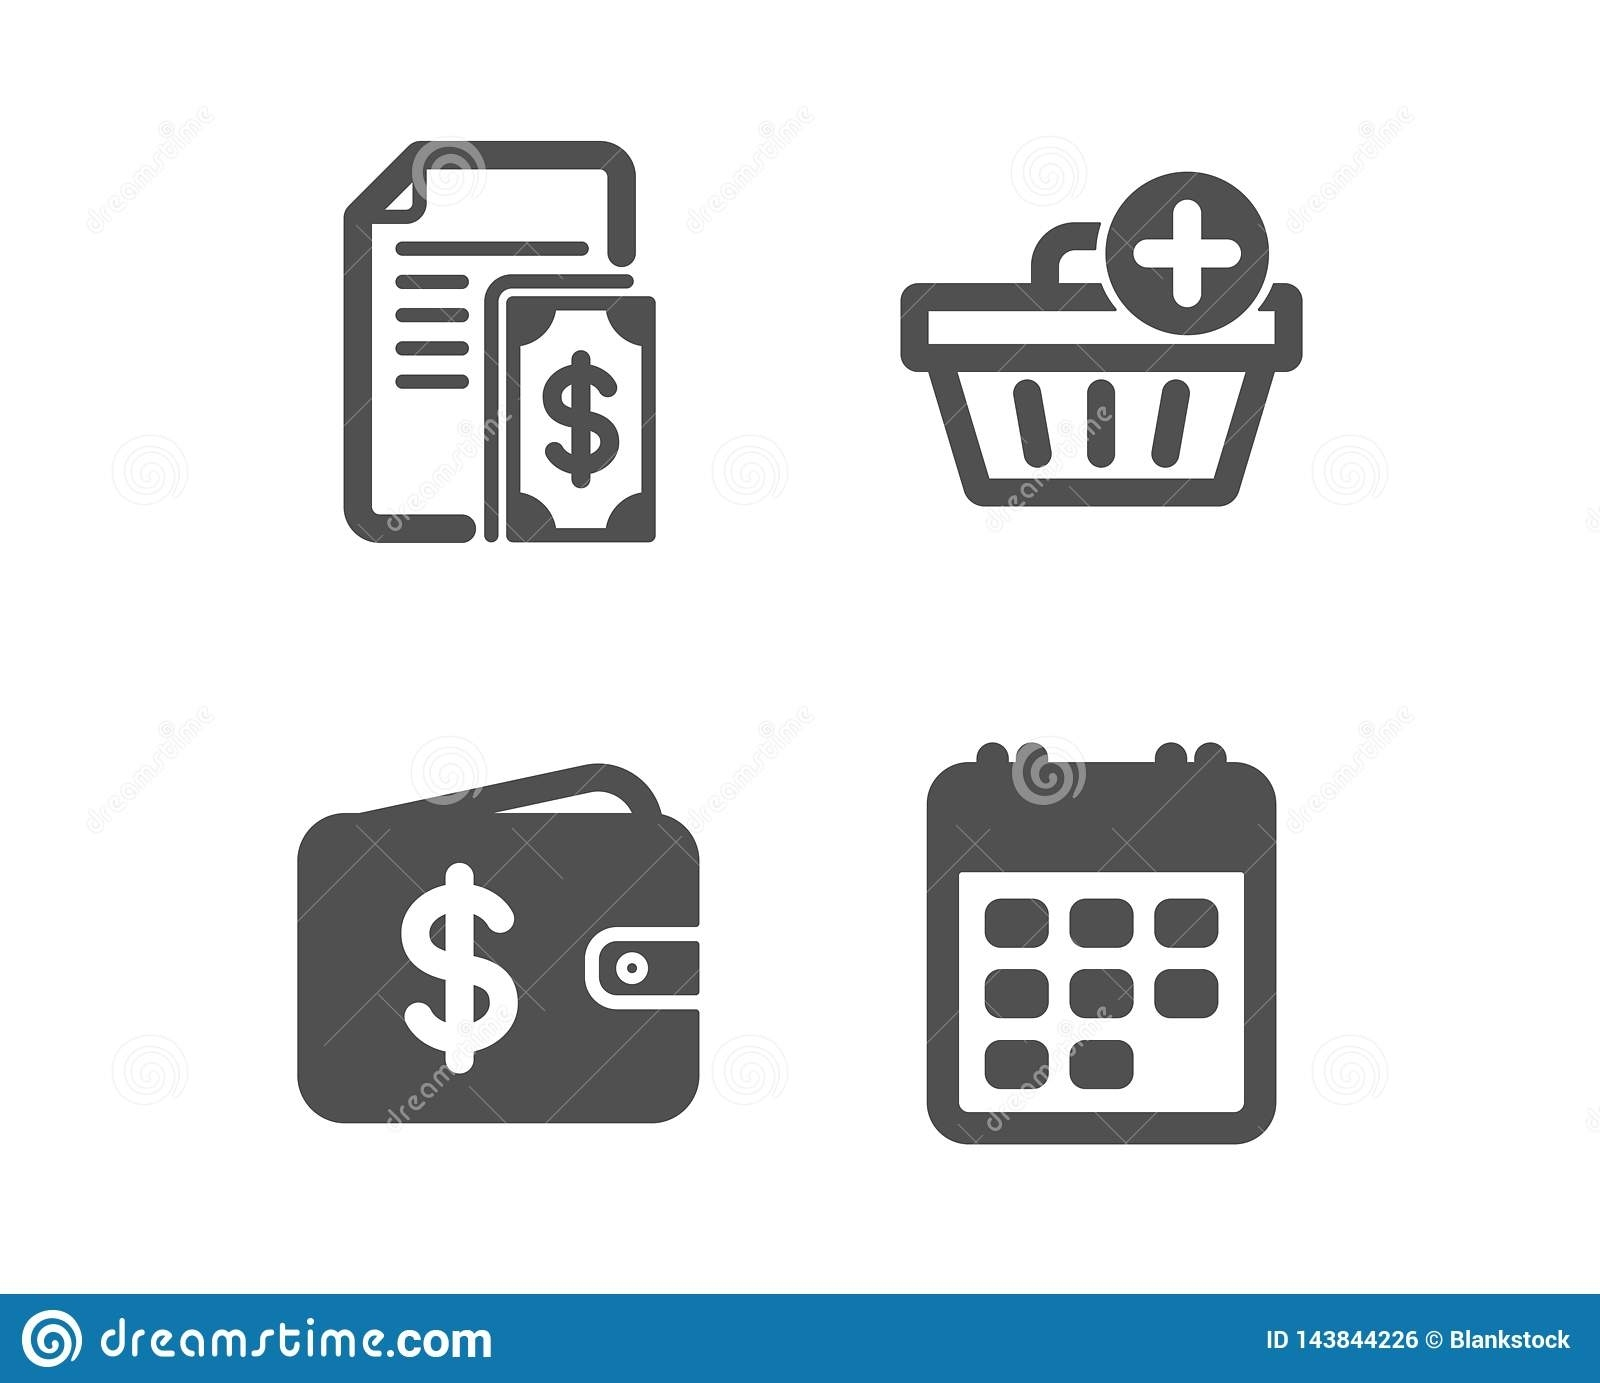 Payment, Add Purchase And Dollar Wallet Icons. Calendar Sign. Cash Add Calendar Event Icon